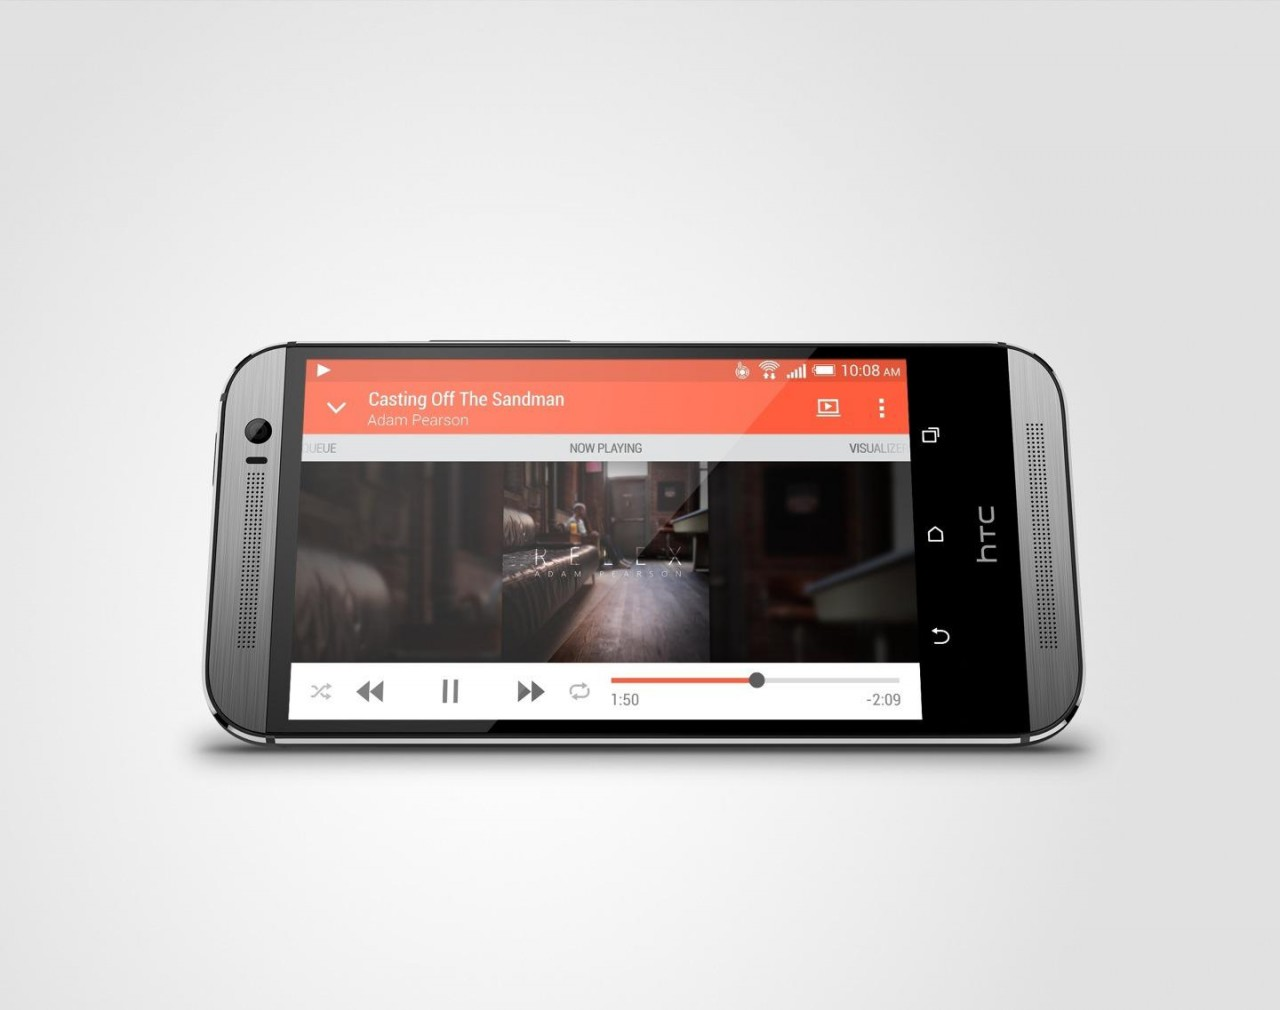 htc 831c. the stereo front speakers come with 25% larger audio chambers for more volume. htc 831c